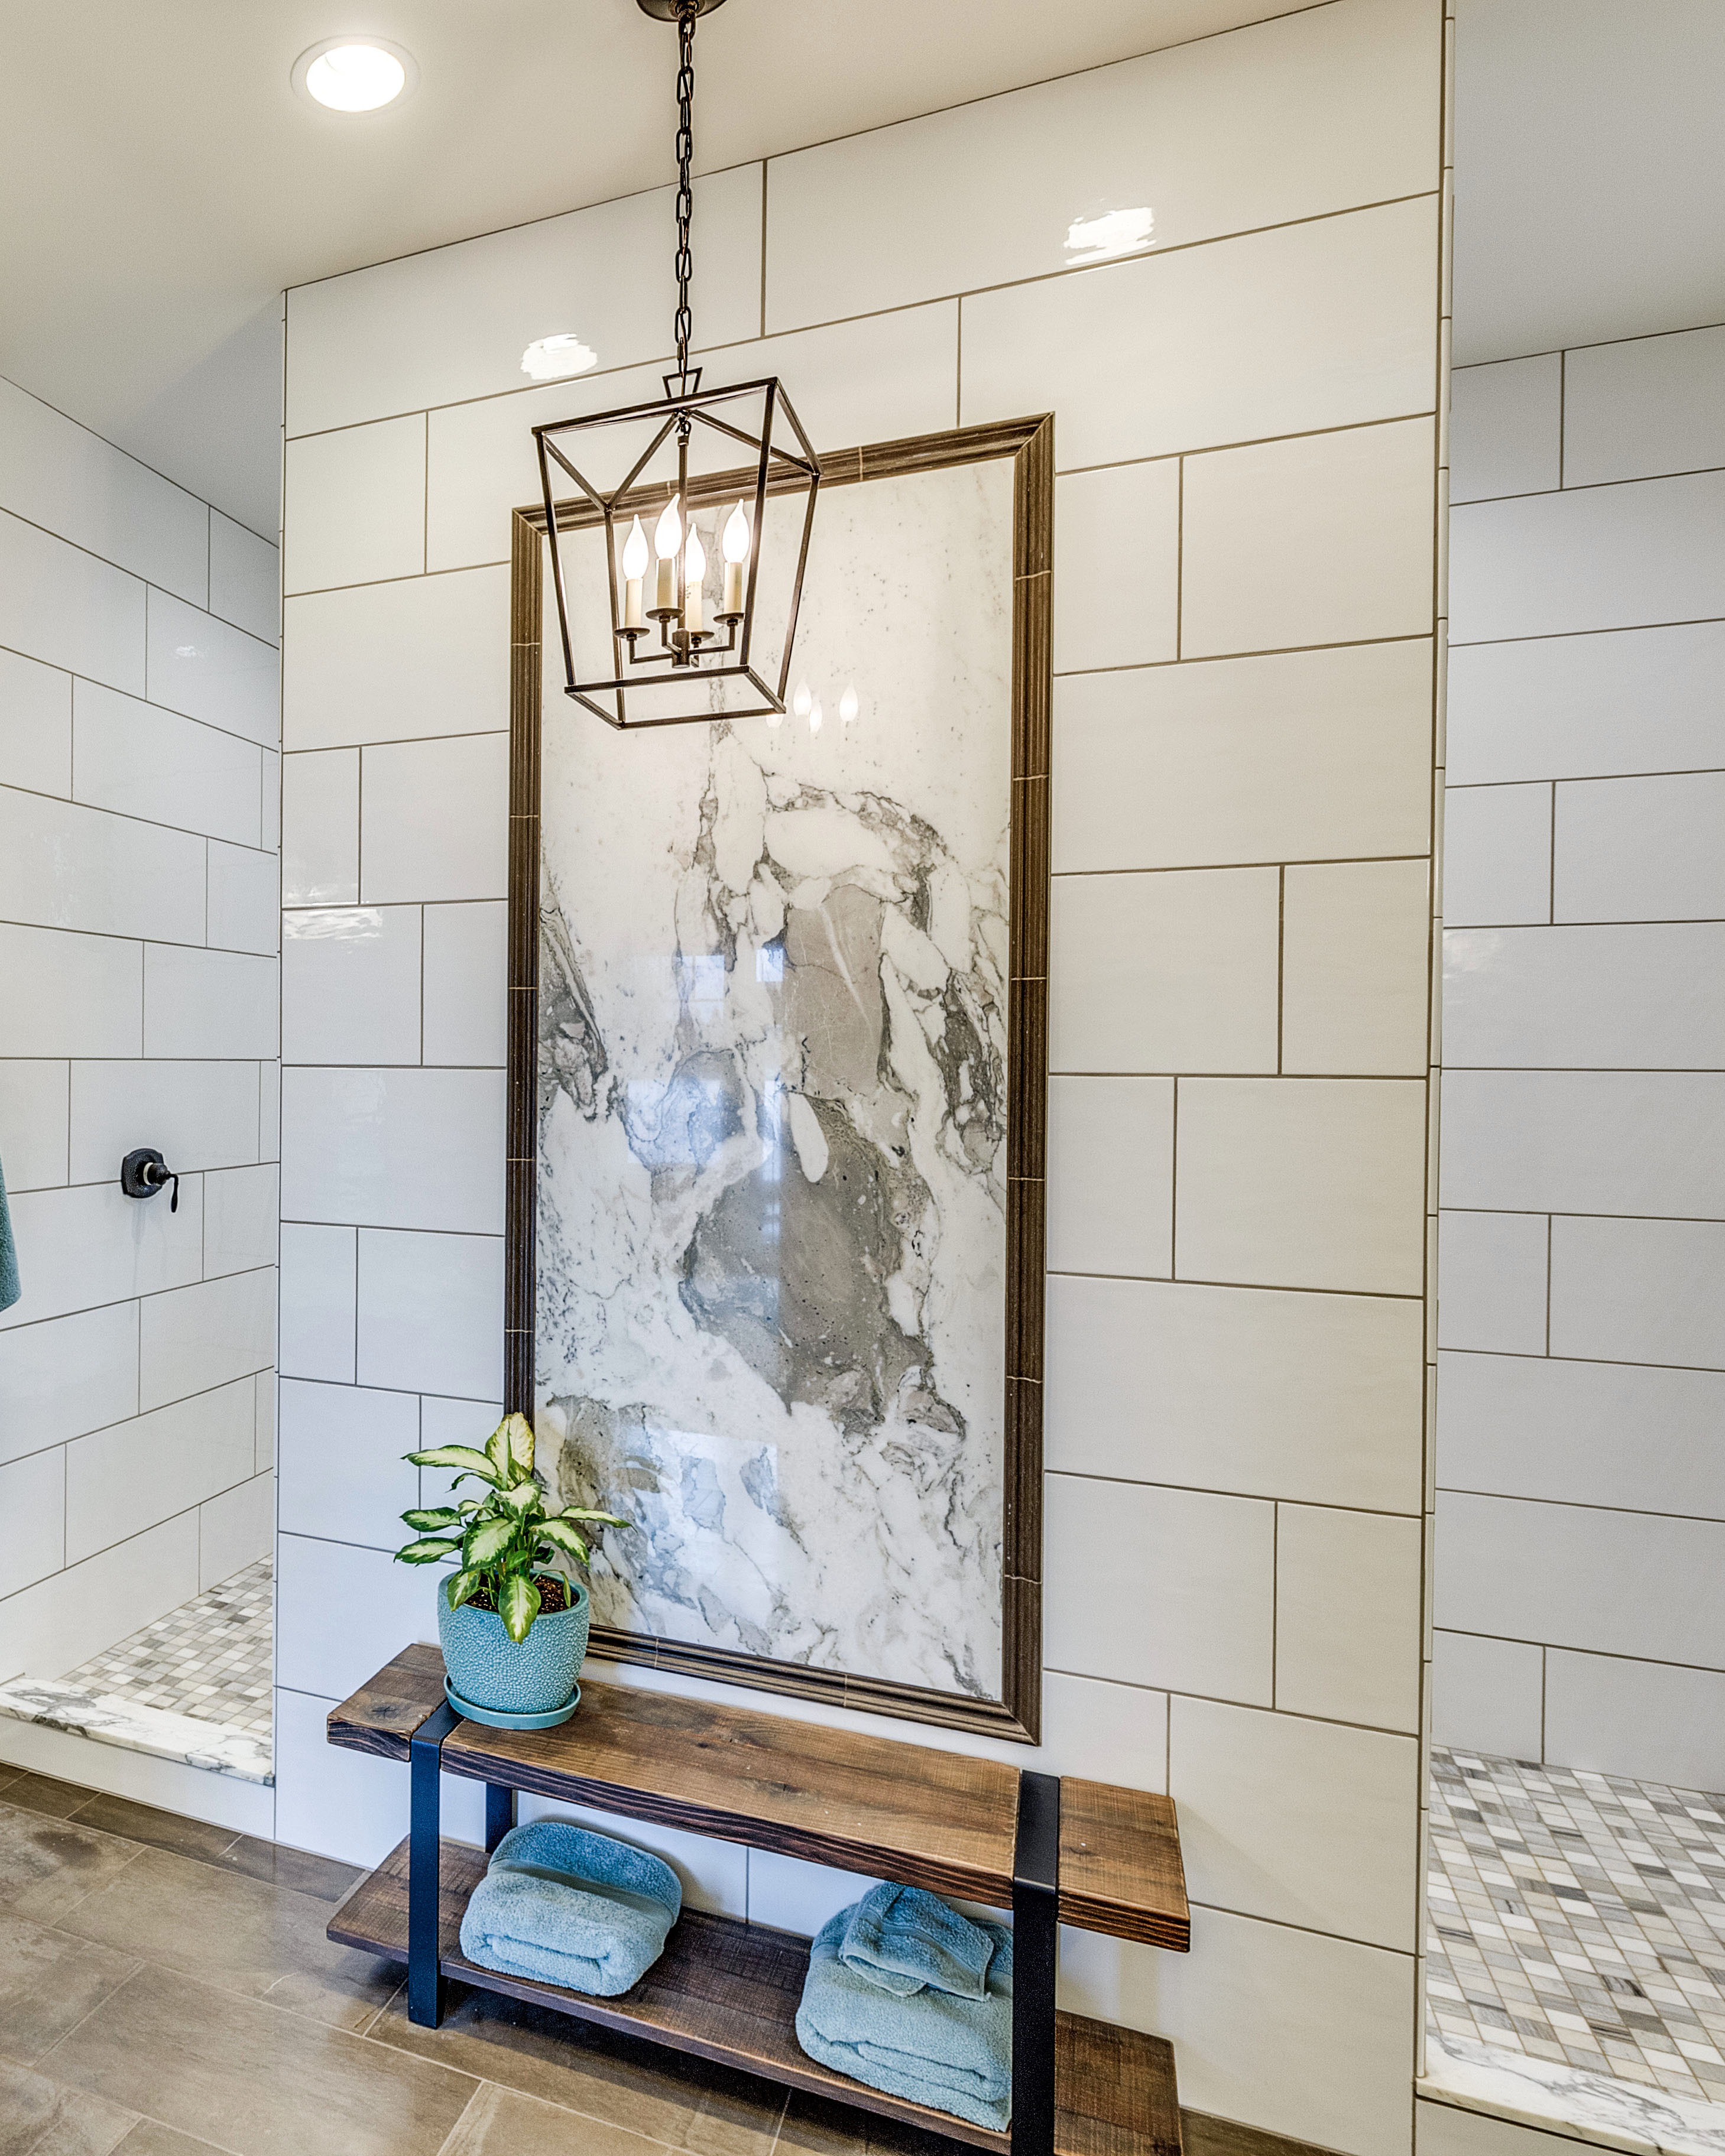 Residential Interior Project Has Modern Yet Vintage Take: Interior Architecture + Design